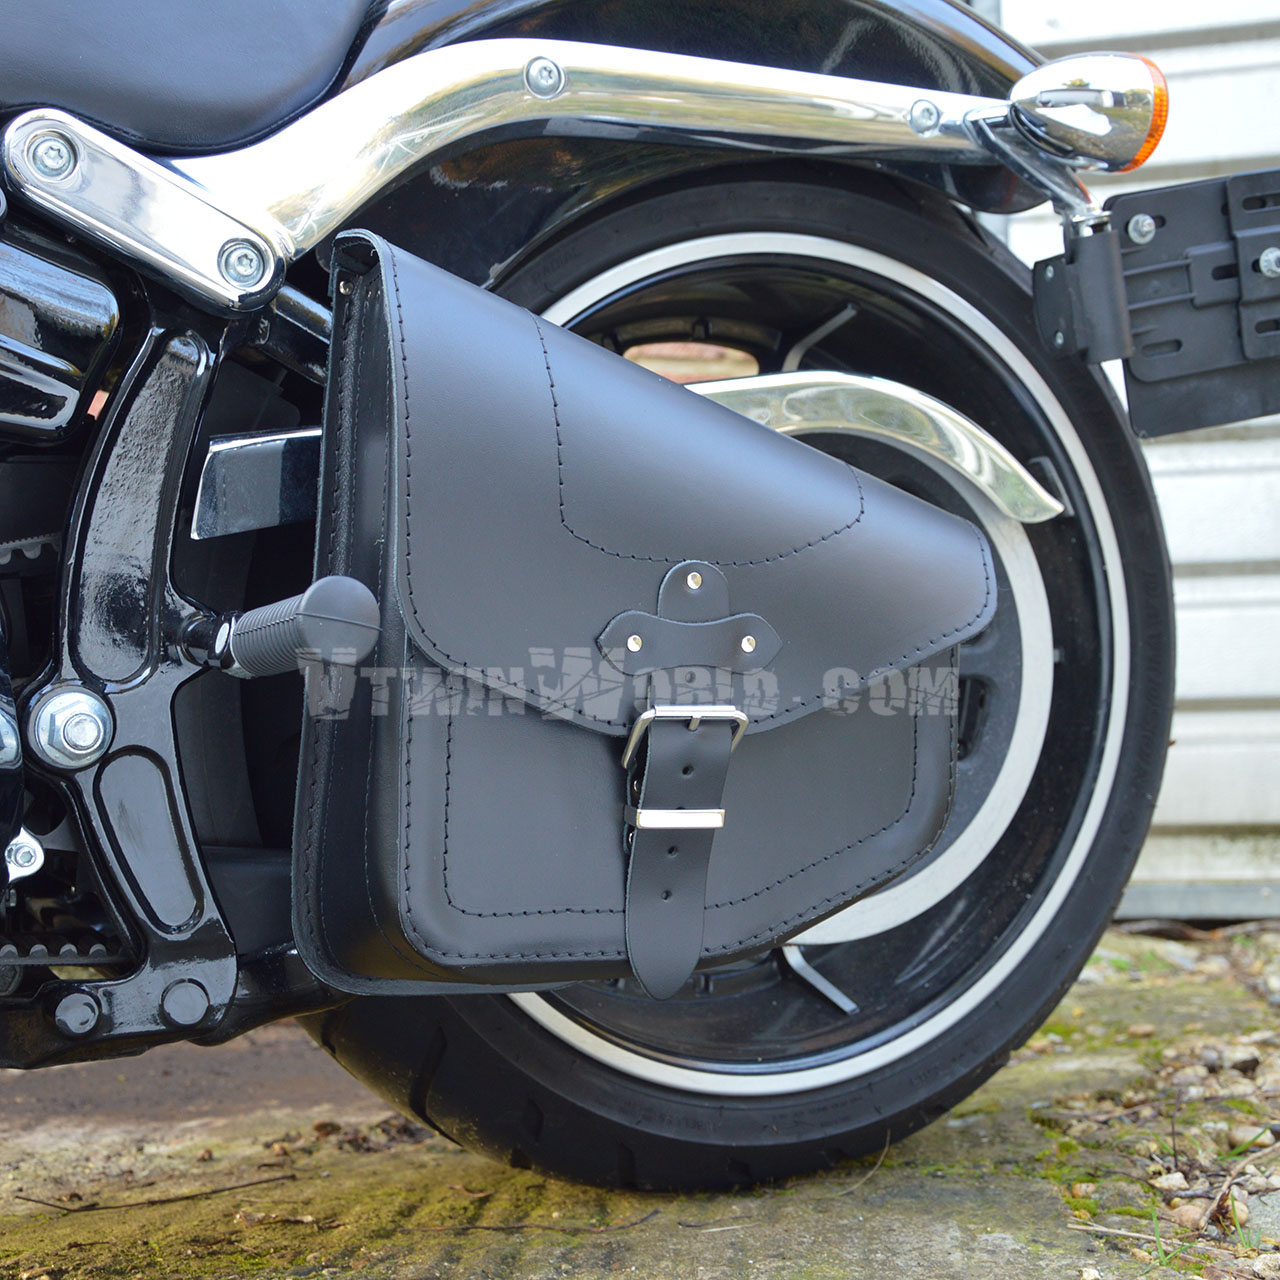 HARLEY DAVIDSON SOFTAIL BREAKOUT FATBOY BLACK LEATHER ...